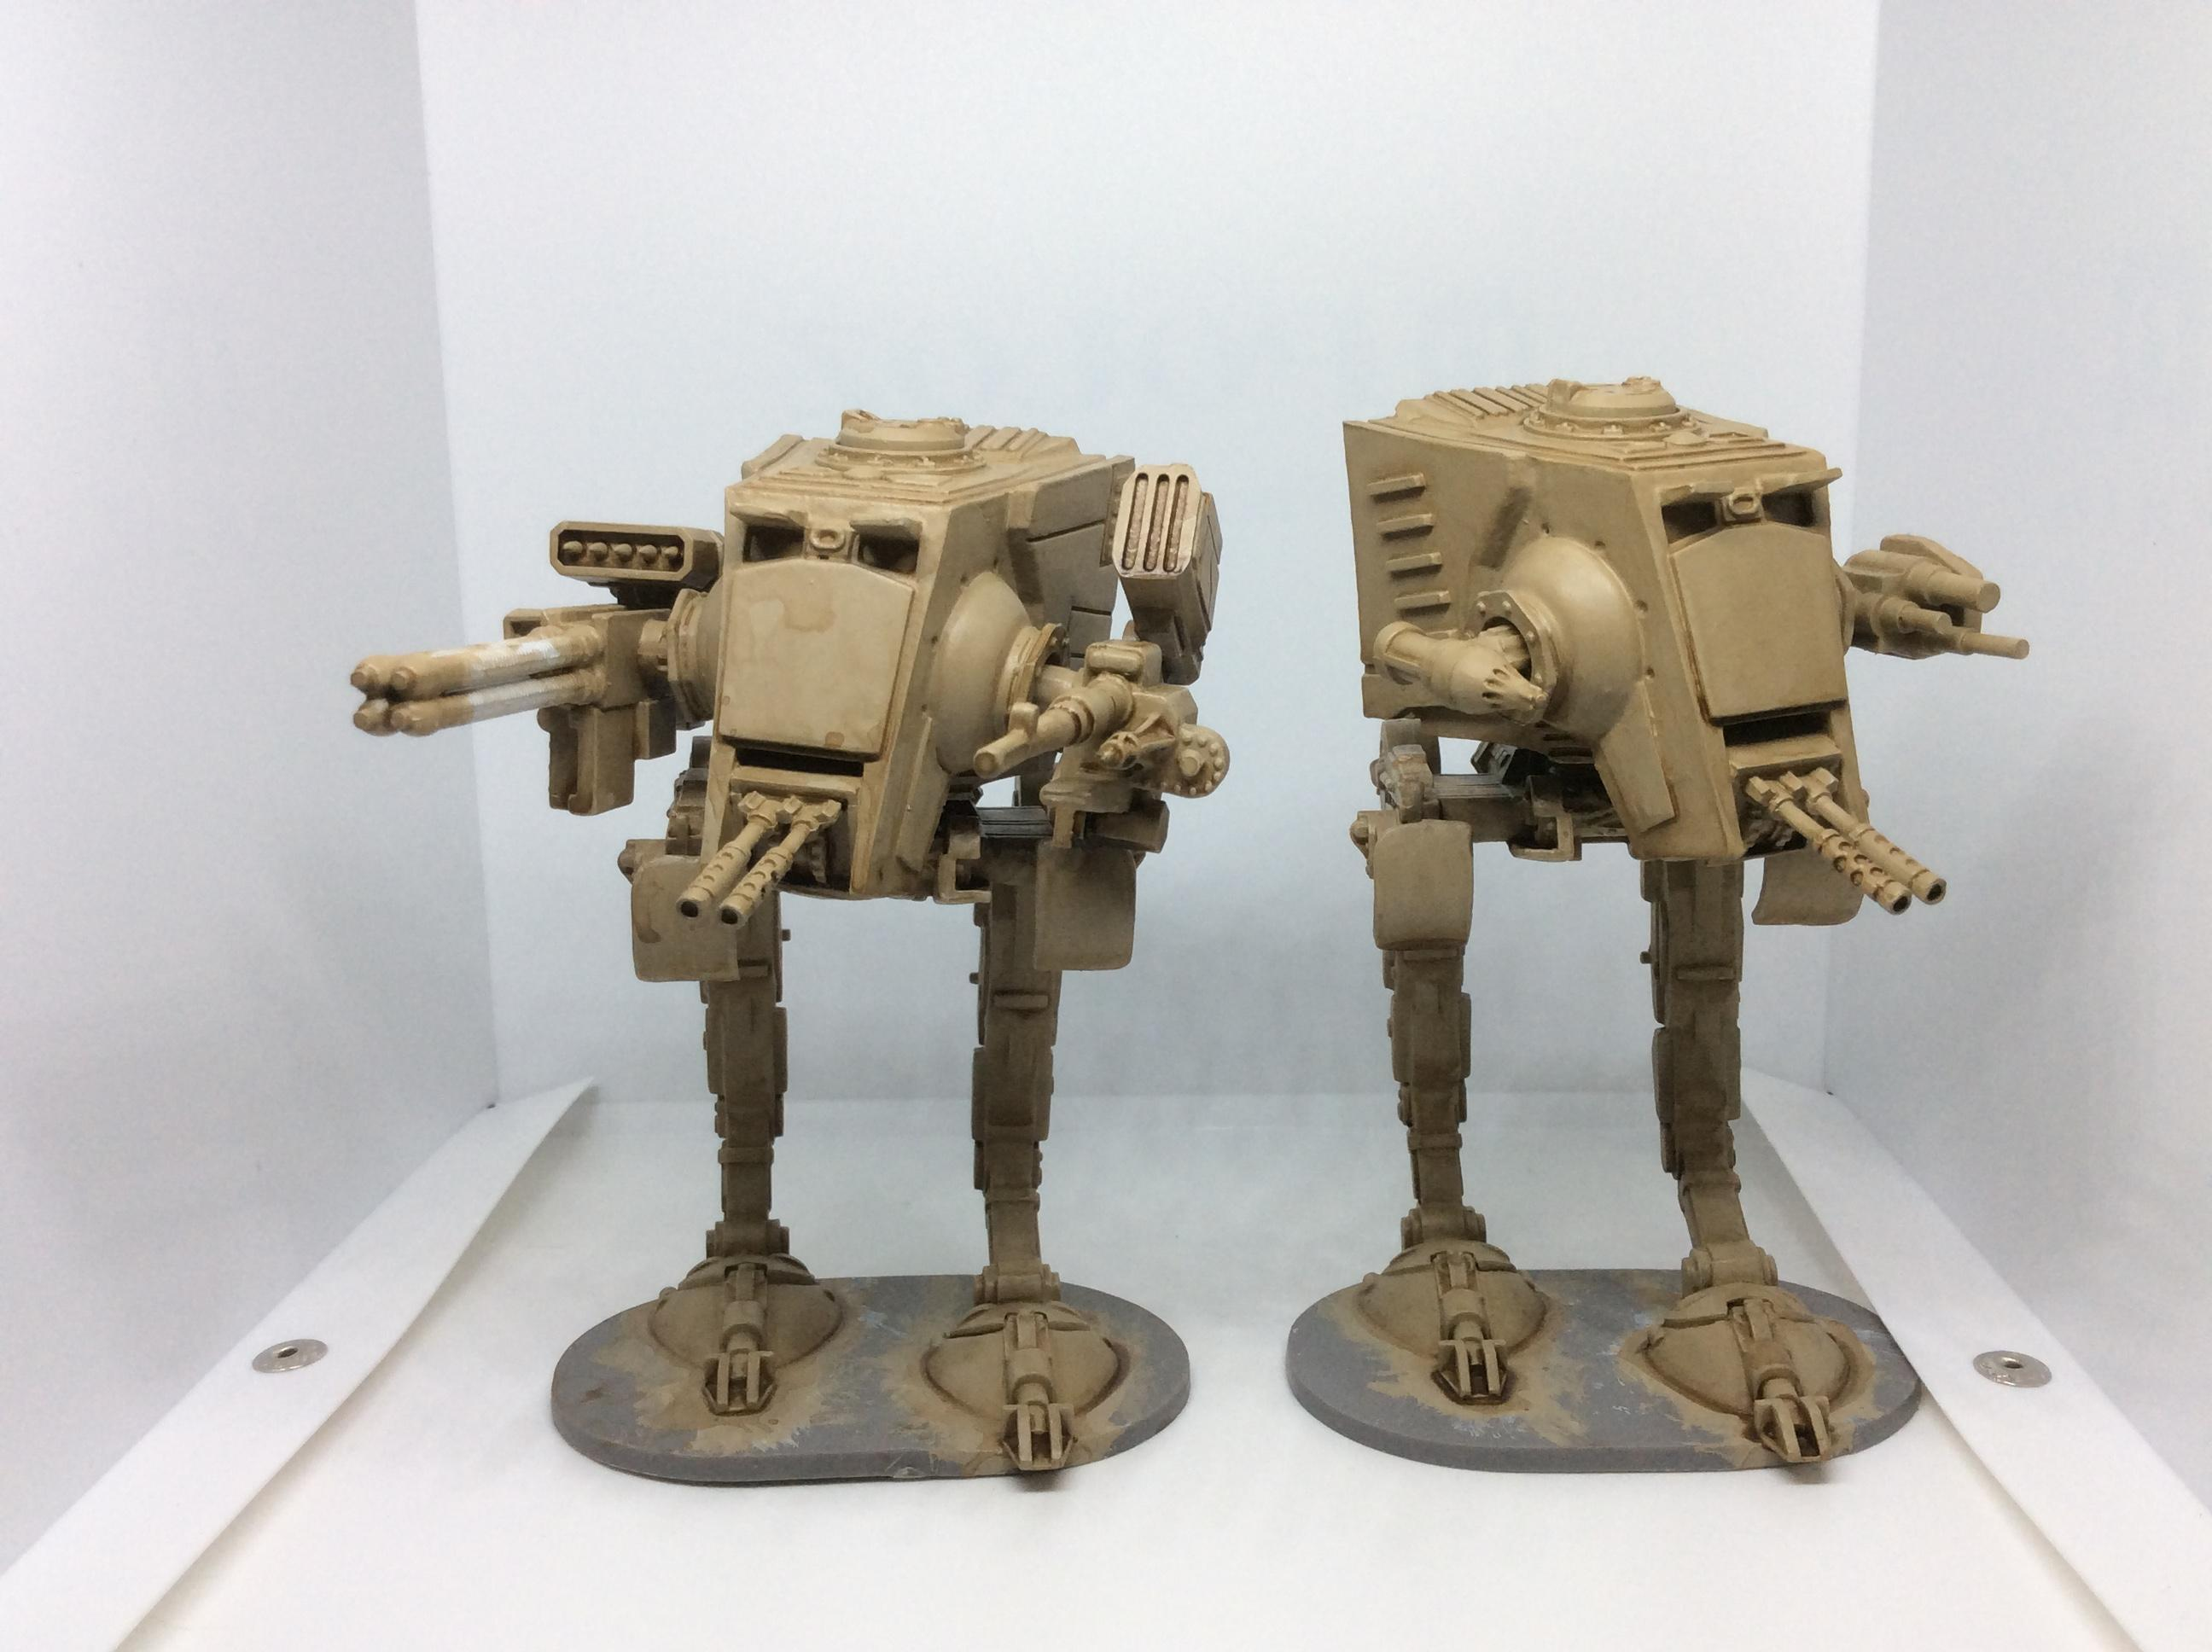 At-st, Conversion, General Weiss, Imperial Assault, Star Wars, Work In Progress